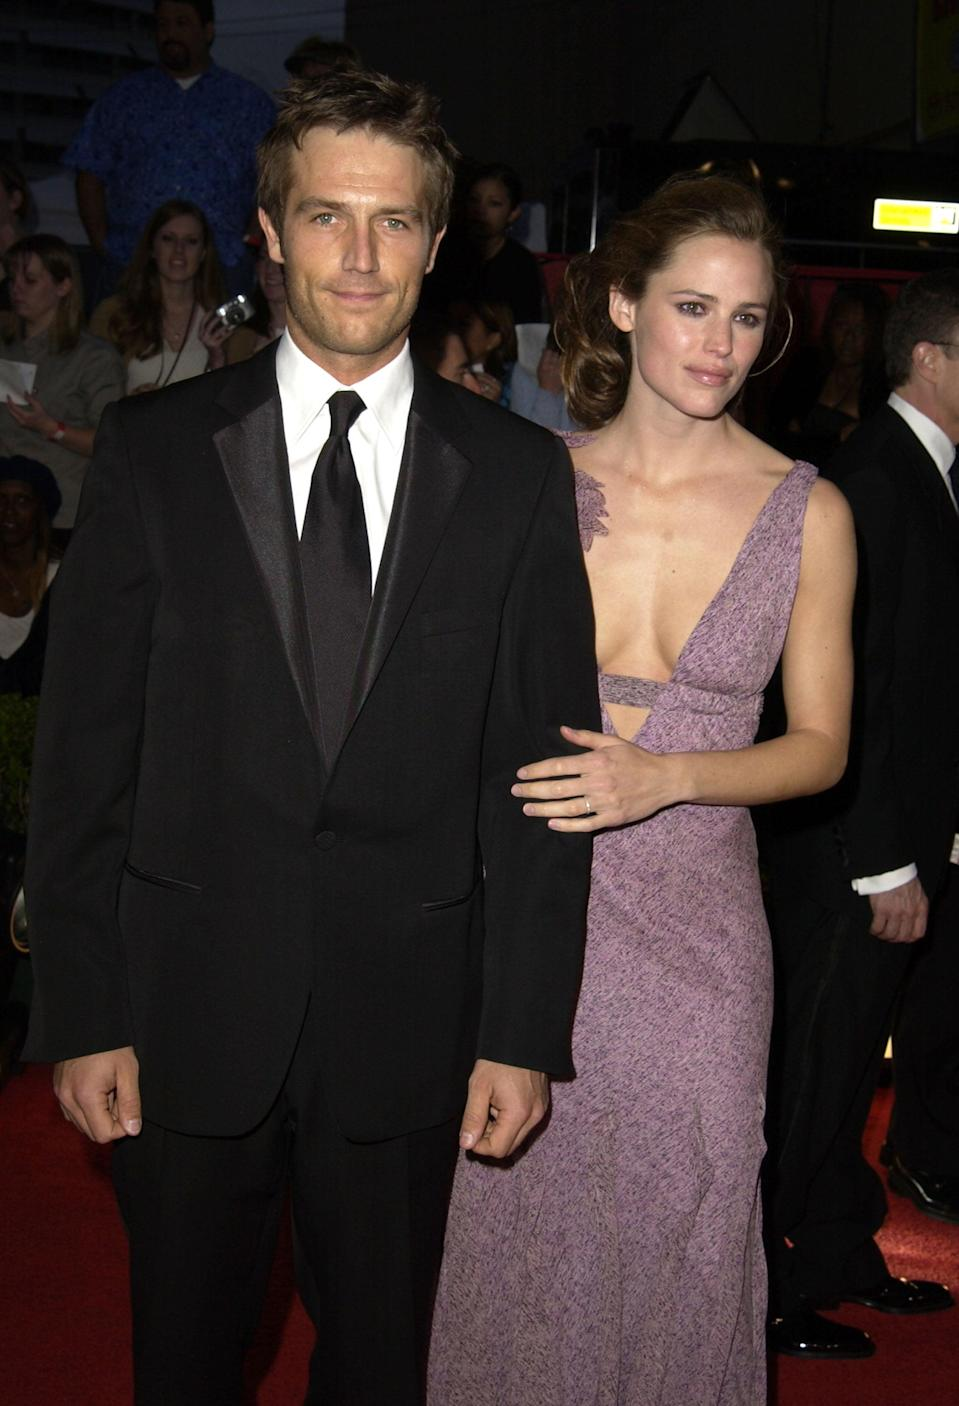 "<p>Jennifer and Michael first met on the set of <strong>Alias </strong>in 2001, though they didn't start dating until two years later. Their relationship only lasted until 2004, and the two both remained on the show - playing lovers Sydney and Michael - until its finale in 2006. </p> <p>In 2005, Michael told <strong>USA Today</strong> that <a href=""http://usatoday30.usatoday.com/life/people/2005-05-12-vartan_x.htm"" class=""link rapid-noclick-resp"" rel=""nofollow noopener"" target=""_blank"" data-ylk=""slk:their breakup was &quot;benign&quot;"">their breakup was ""benign""</a> and that he and Jennifer decided they were ""better off as friends."" They were so close that Jennifer even told Michael about her engagement to <a class=""link rapid-noclick-resp"" href=""https://www.popsugar.com/Ben-Affleck"" rel=""nofollow noopener"" target=""_blank"" data-ylk=""slk:Ben Affleck"">Ben Affleck</a> before the rest of the world found out. ""On the surface, it could have been a recipe for disaster,"" he said of their on-set relationship following their breakup. ""But Jennifer and I were best friends first, during, and after.""<br></p>"